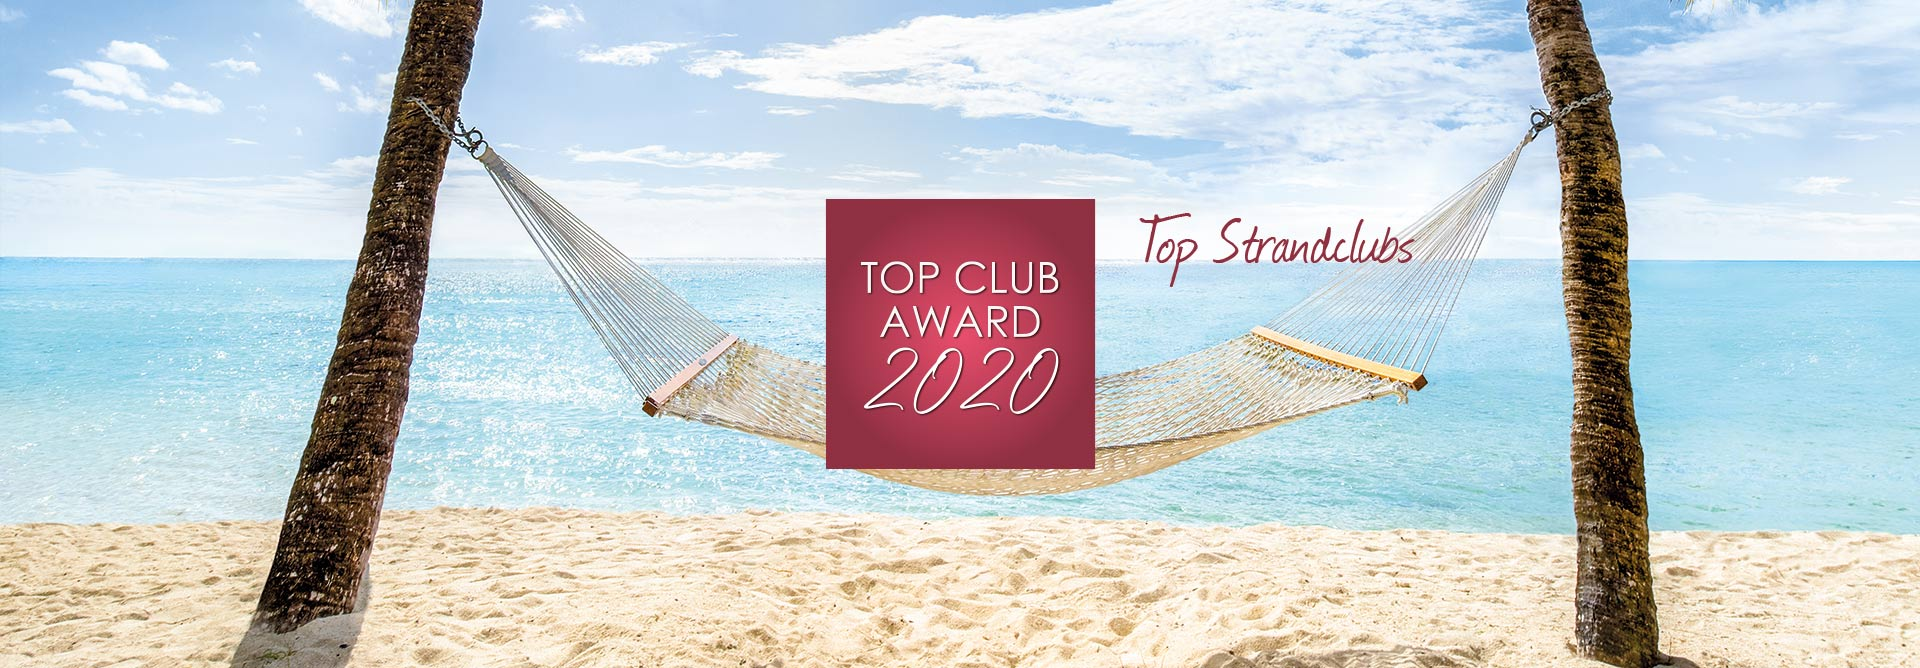 Top Clubs Strand